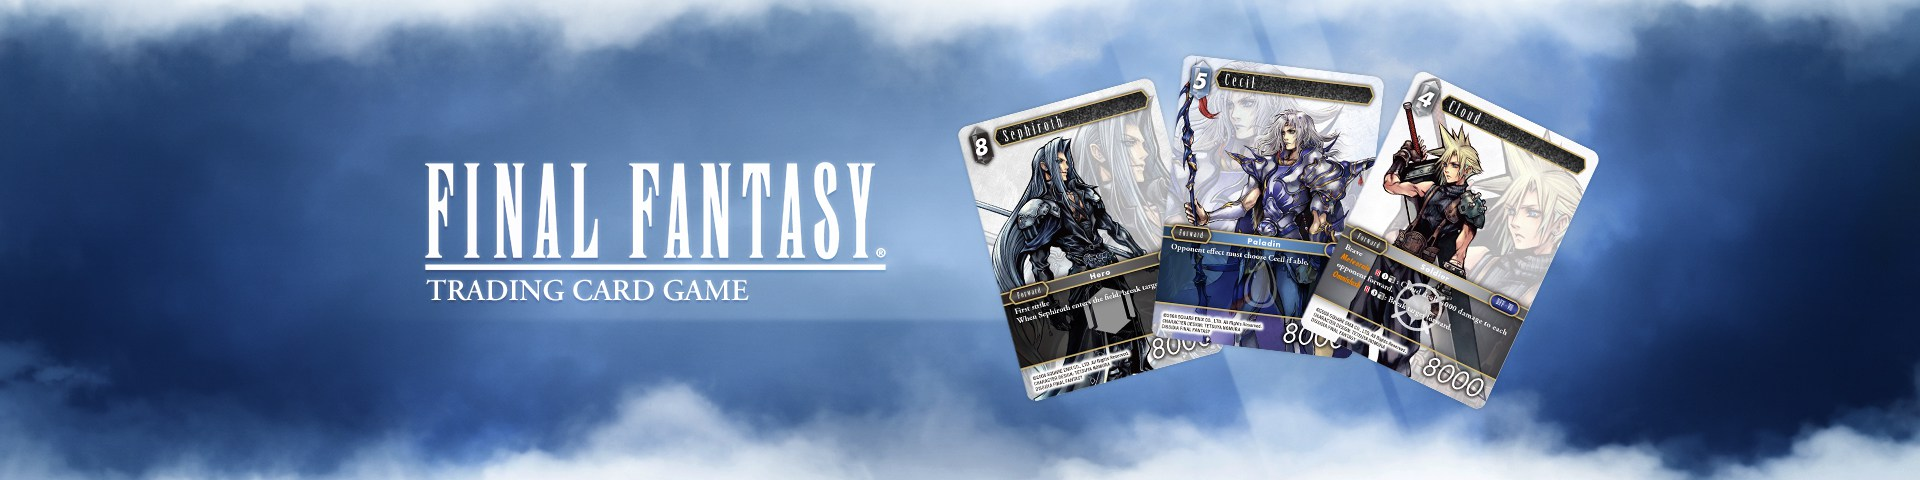 Final Fantasy Trading Card Game sales reach staggering heights